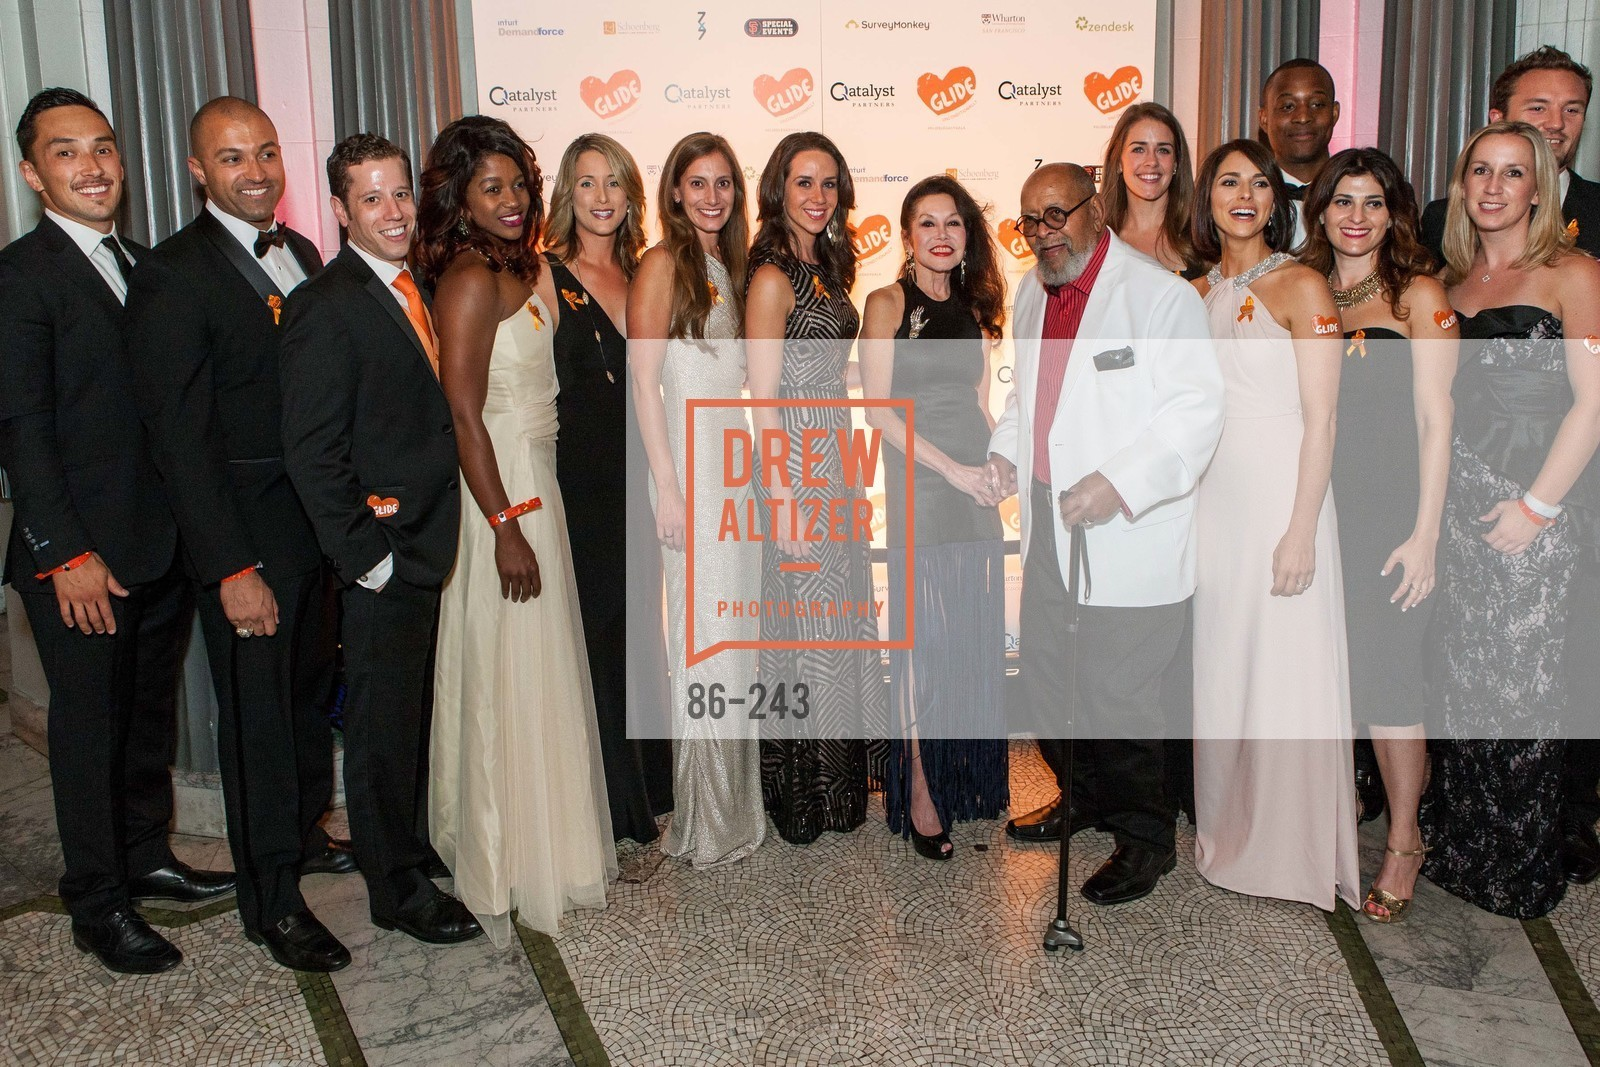 Brent Giesler, Faham Zakariaei, Ben Rosenfield, Alyssa Kargbo, Emily Cohen, Amy Gardner, Laura Thompson, Janice Mirikitani, Cecil Williams, Mary Wyatt, Rebecca Sanchez, Earnest Sweat, Rebecca Sills, Nicole Valco, Colson Griffith, 6TH ANNUAL GLIDE LEGACY GALA, The Regency Ballroom. 1300 Van Ness Ave, August 22nd, 2015,Drew Altizer, Drew Altizer Photography, full-service agency, private events, San Francisco photographer, photographer california